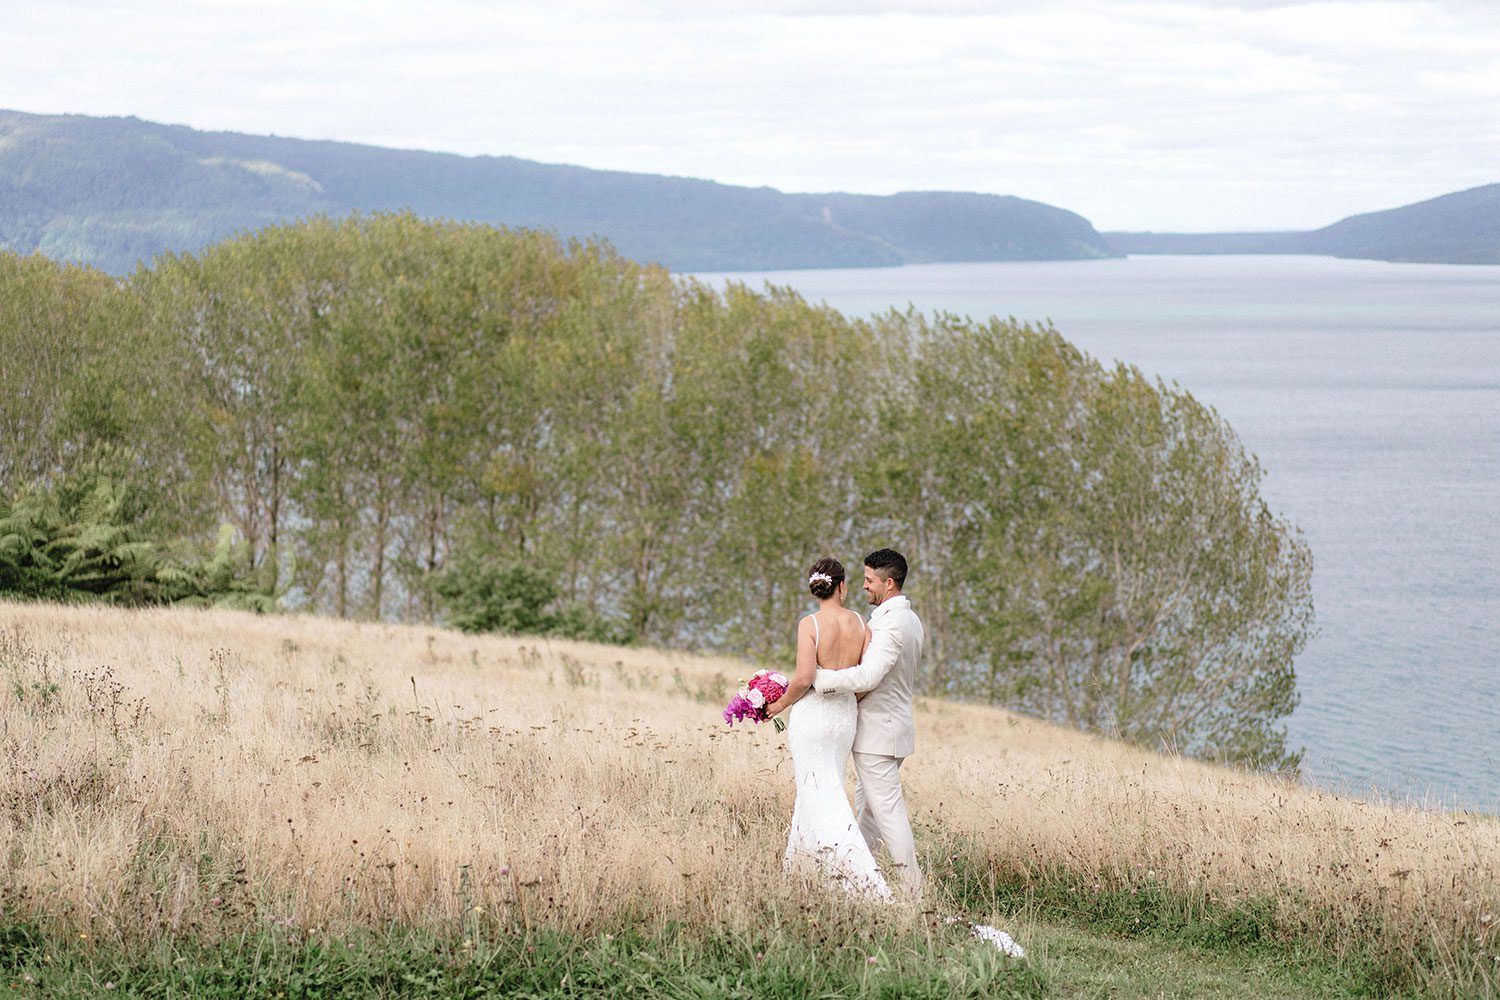 Bride wears bespoke E'More lace gown with boned bodice with hand beaded flower applique and full lace train by Auckland wedding dress maker Vinka designs - with groom back embrace walking in field